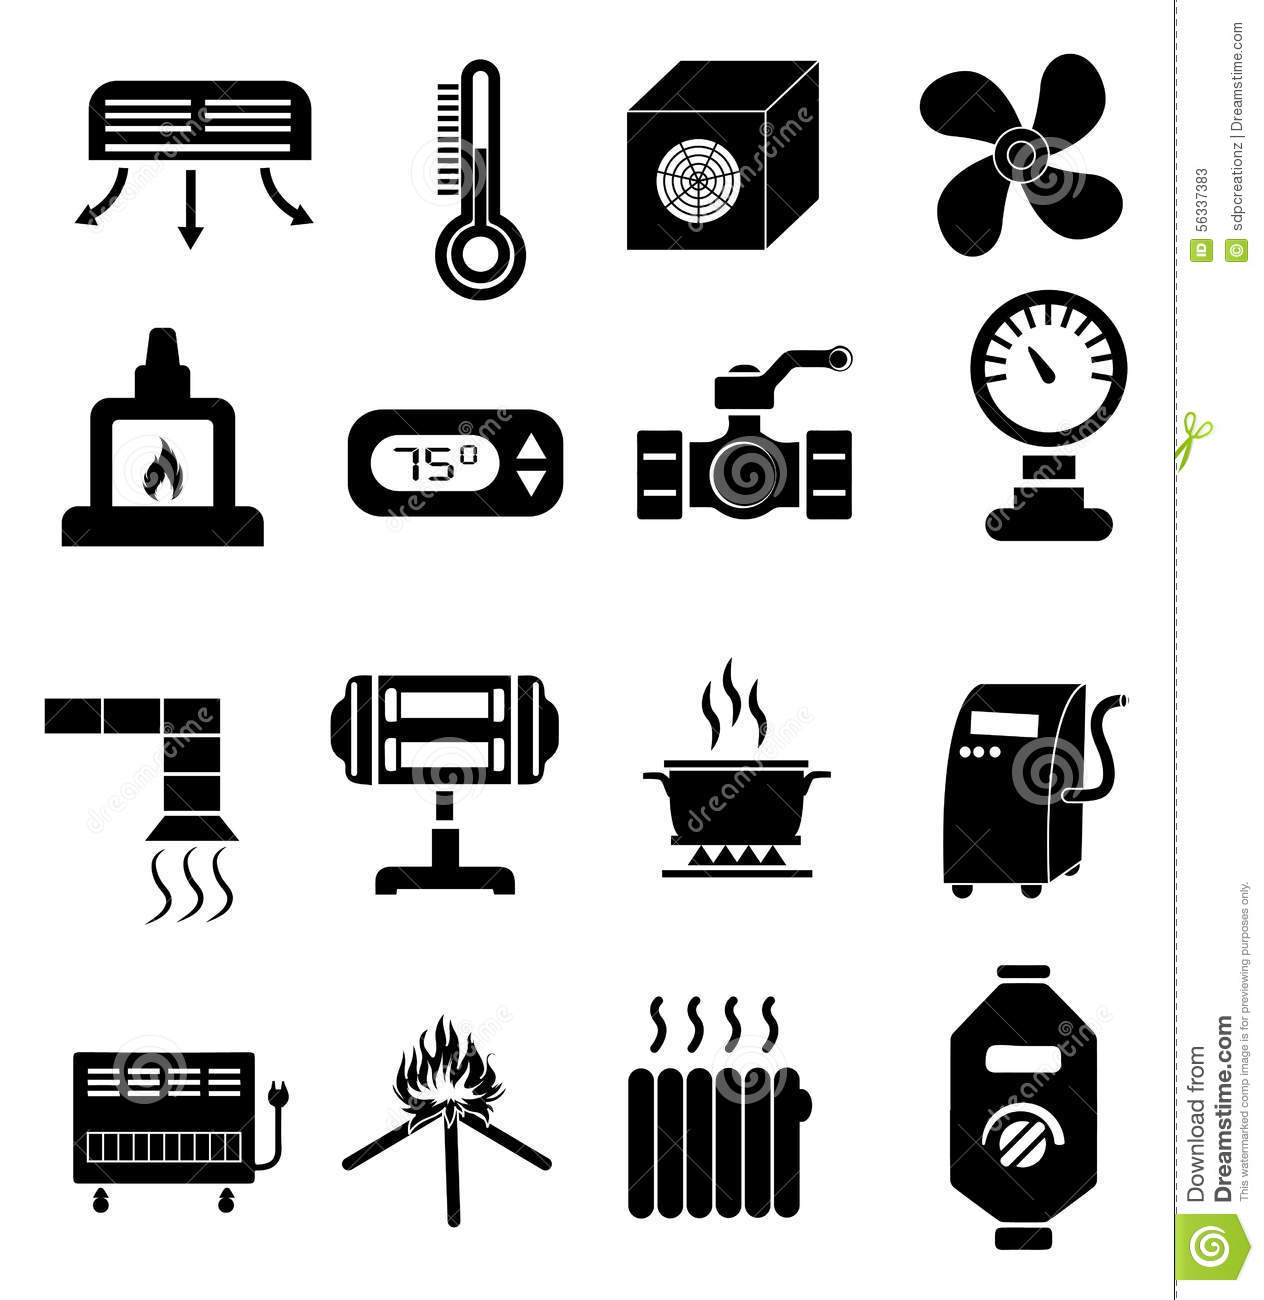 Heating Icons Set Stock Vector Illustration Of Isolated